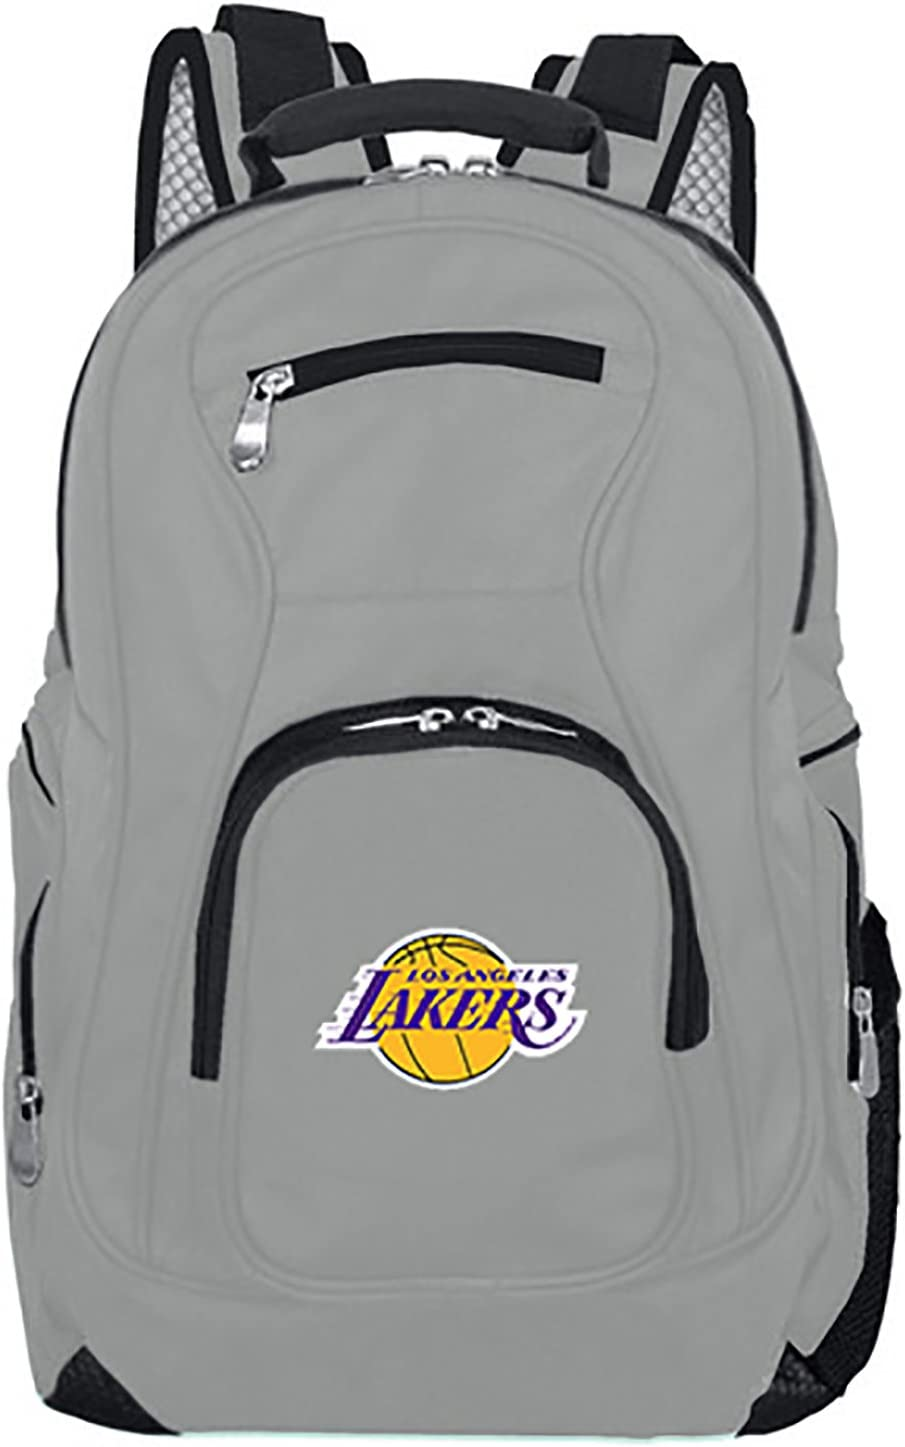 NBA Laptop Backpack, 19-inches, Grey